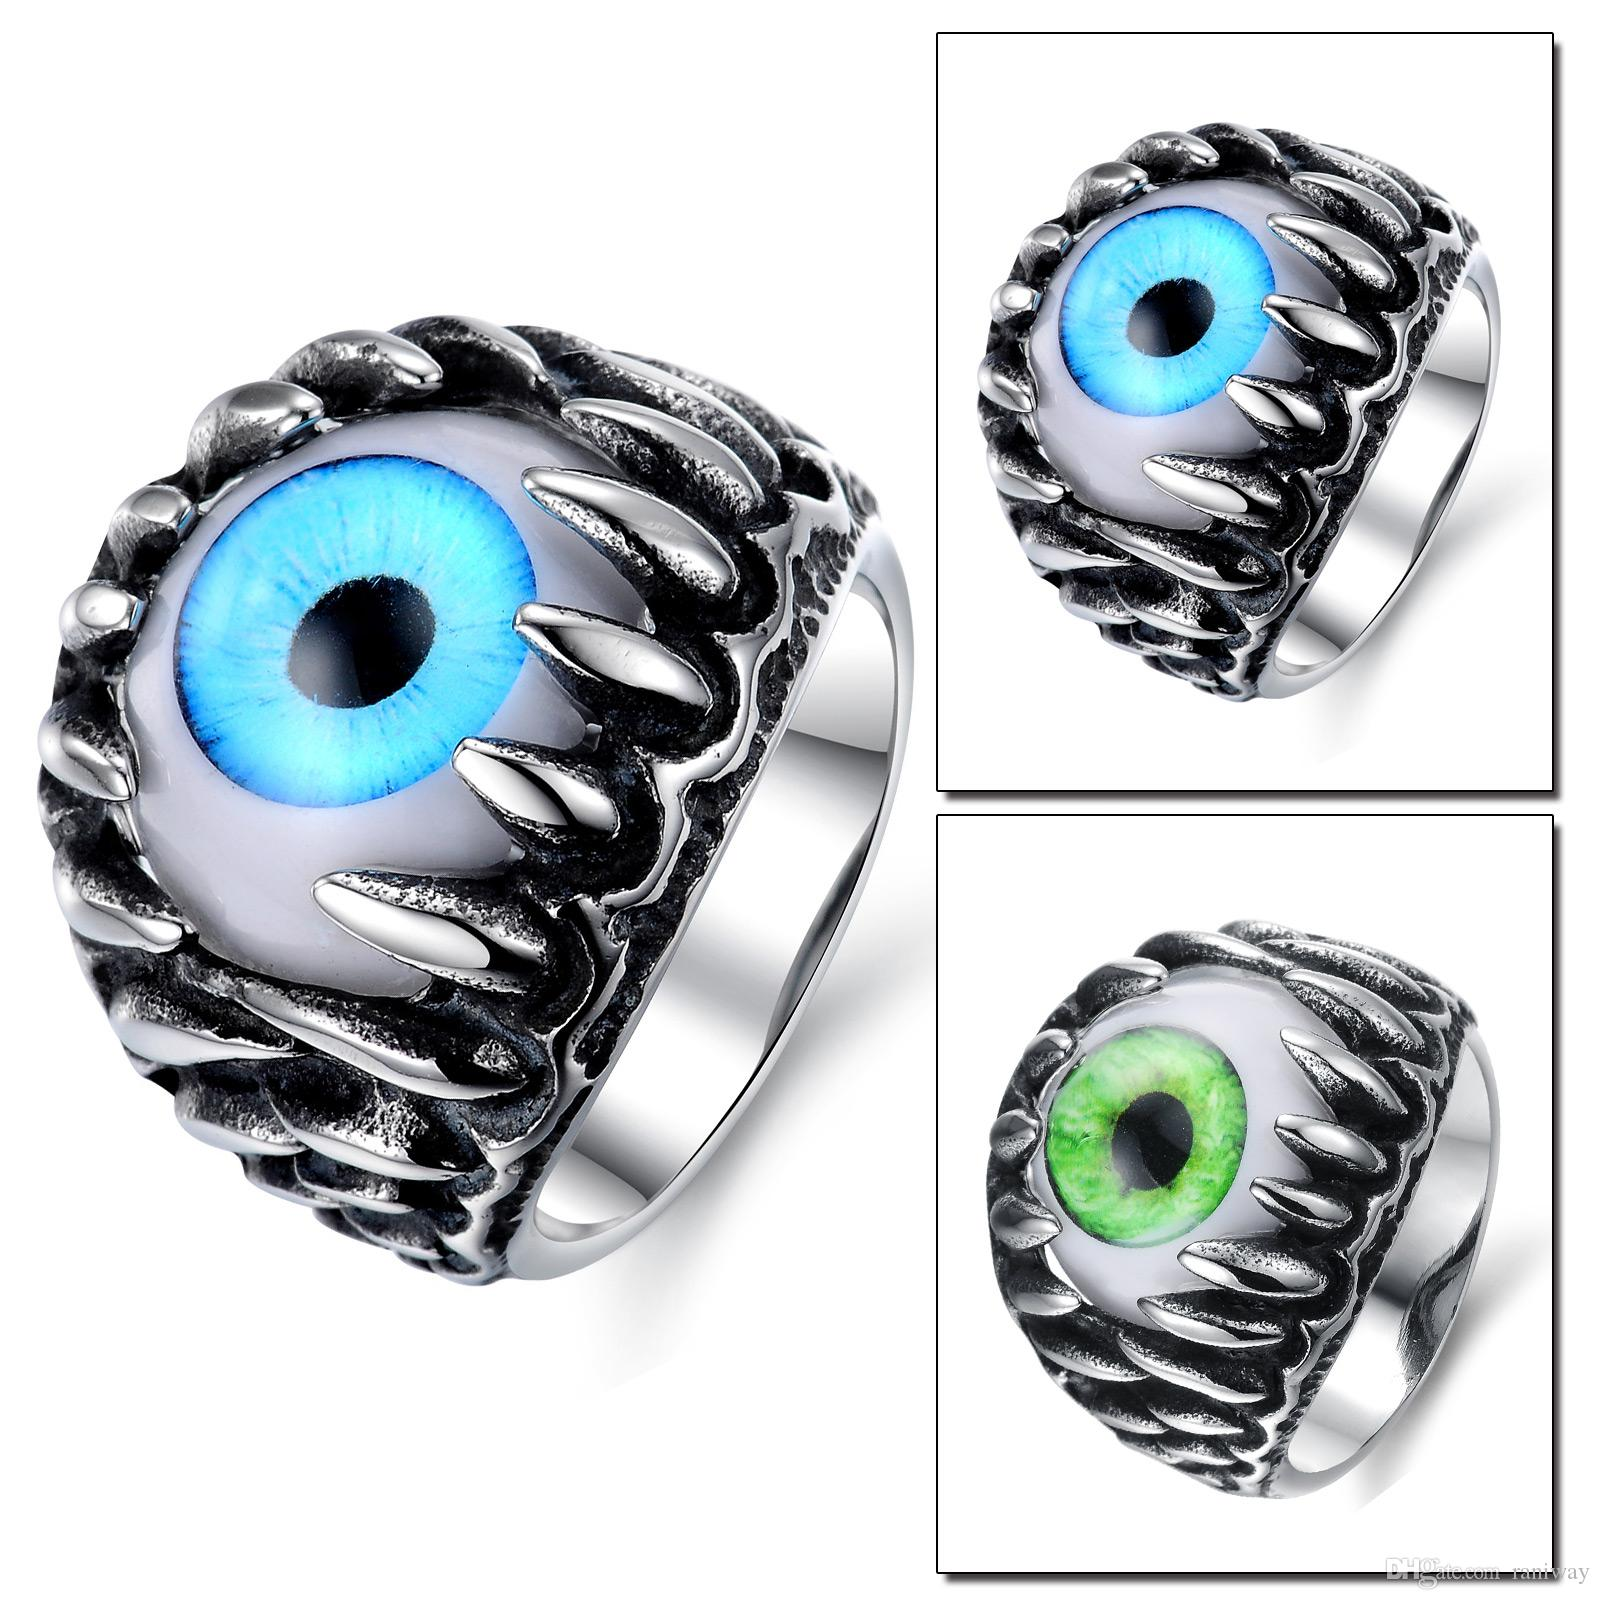 Vintage MenS Stainless Steel Dragon Claw Opal Eyeball CatS Eye